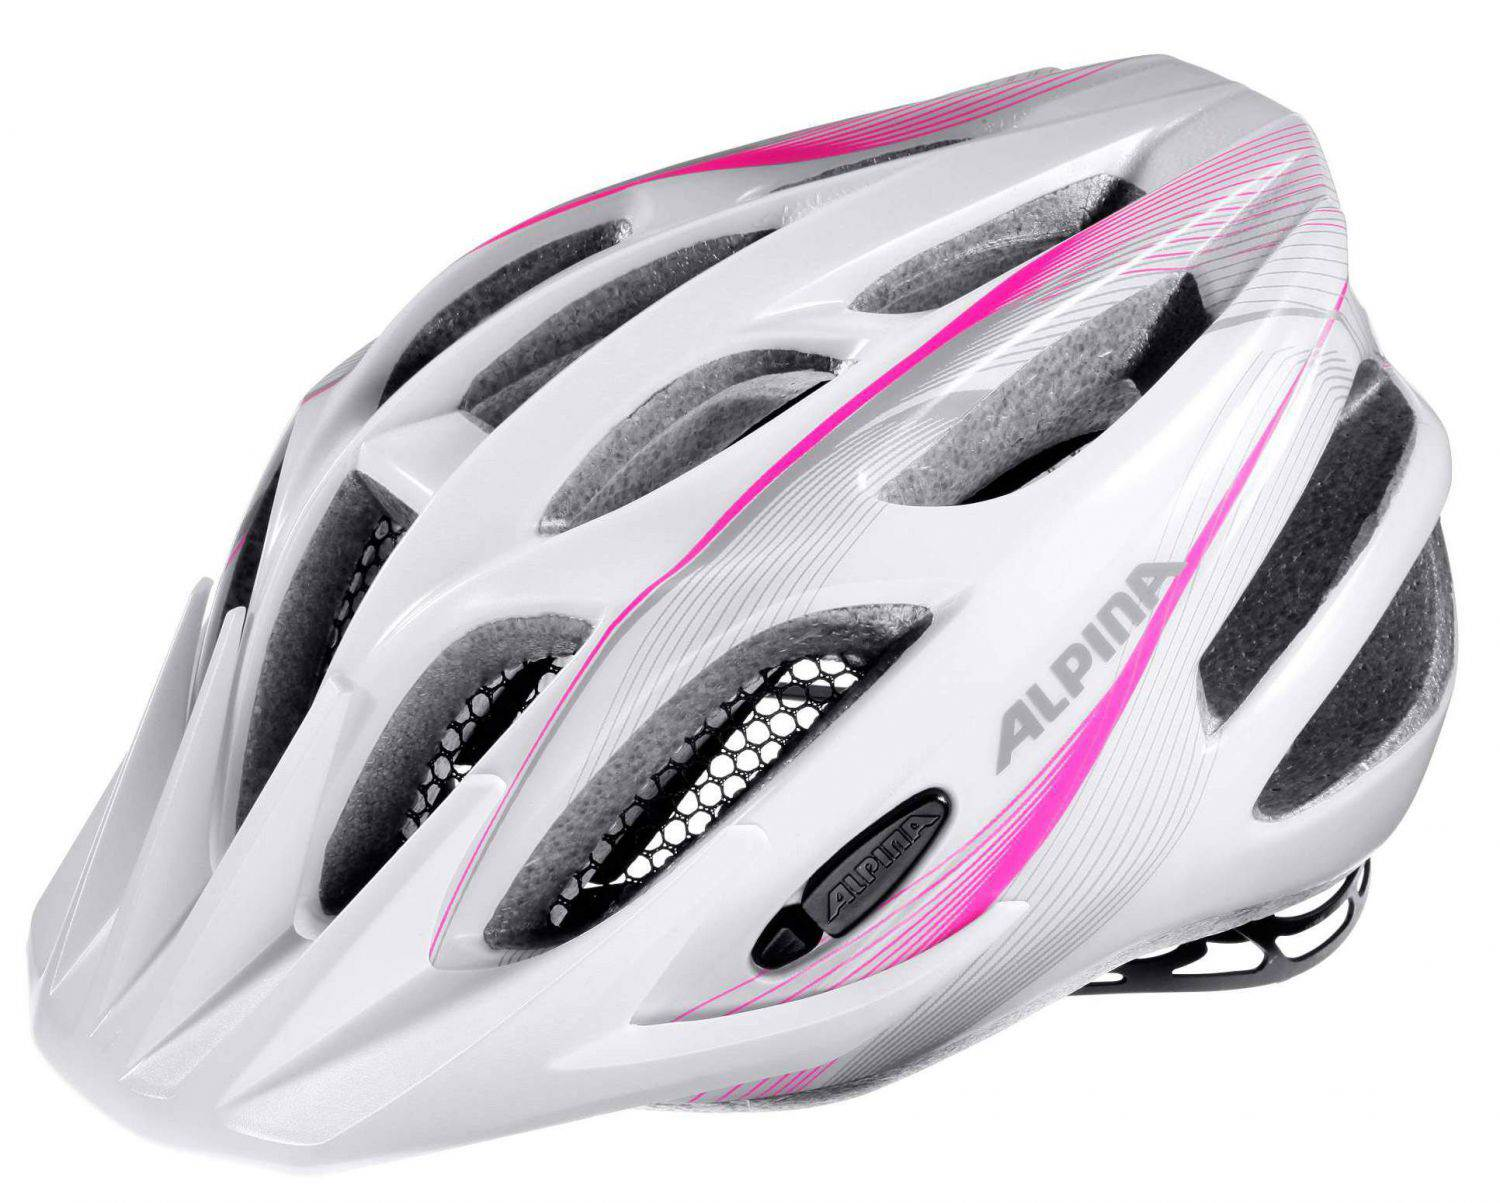 Alpina Firebird Junior 2.0 Flash Radhelm (Größe: 50-55 cm, 11 white/pink/silver) Sale Angebote Groß Gaglow